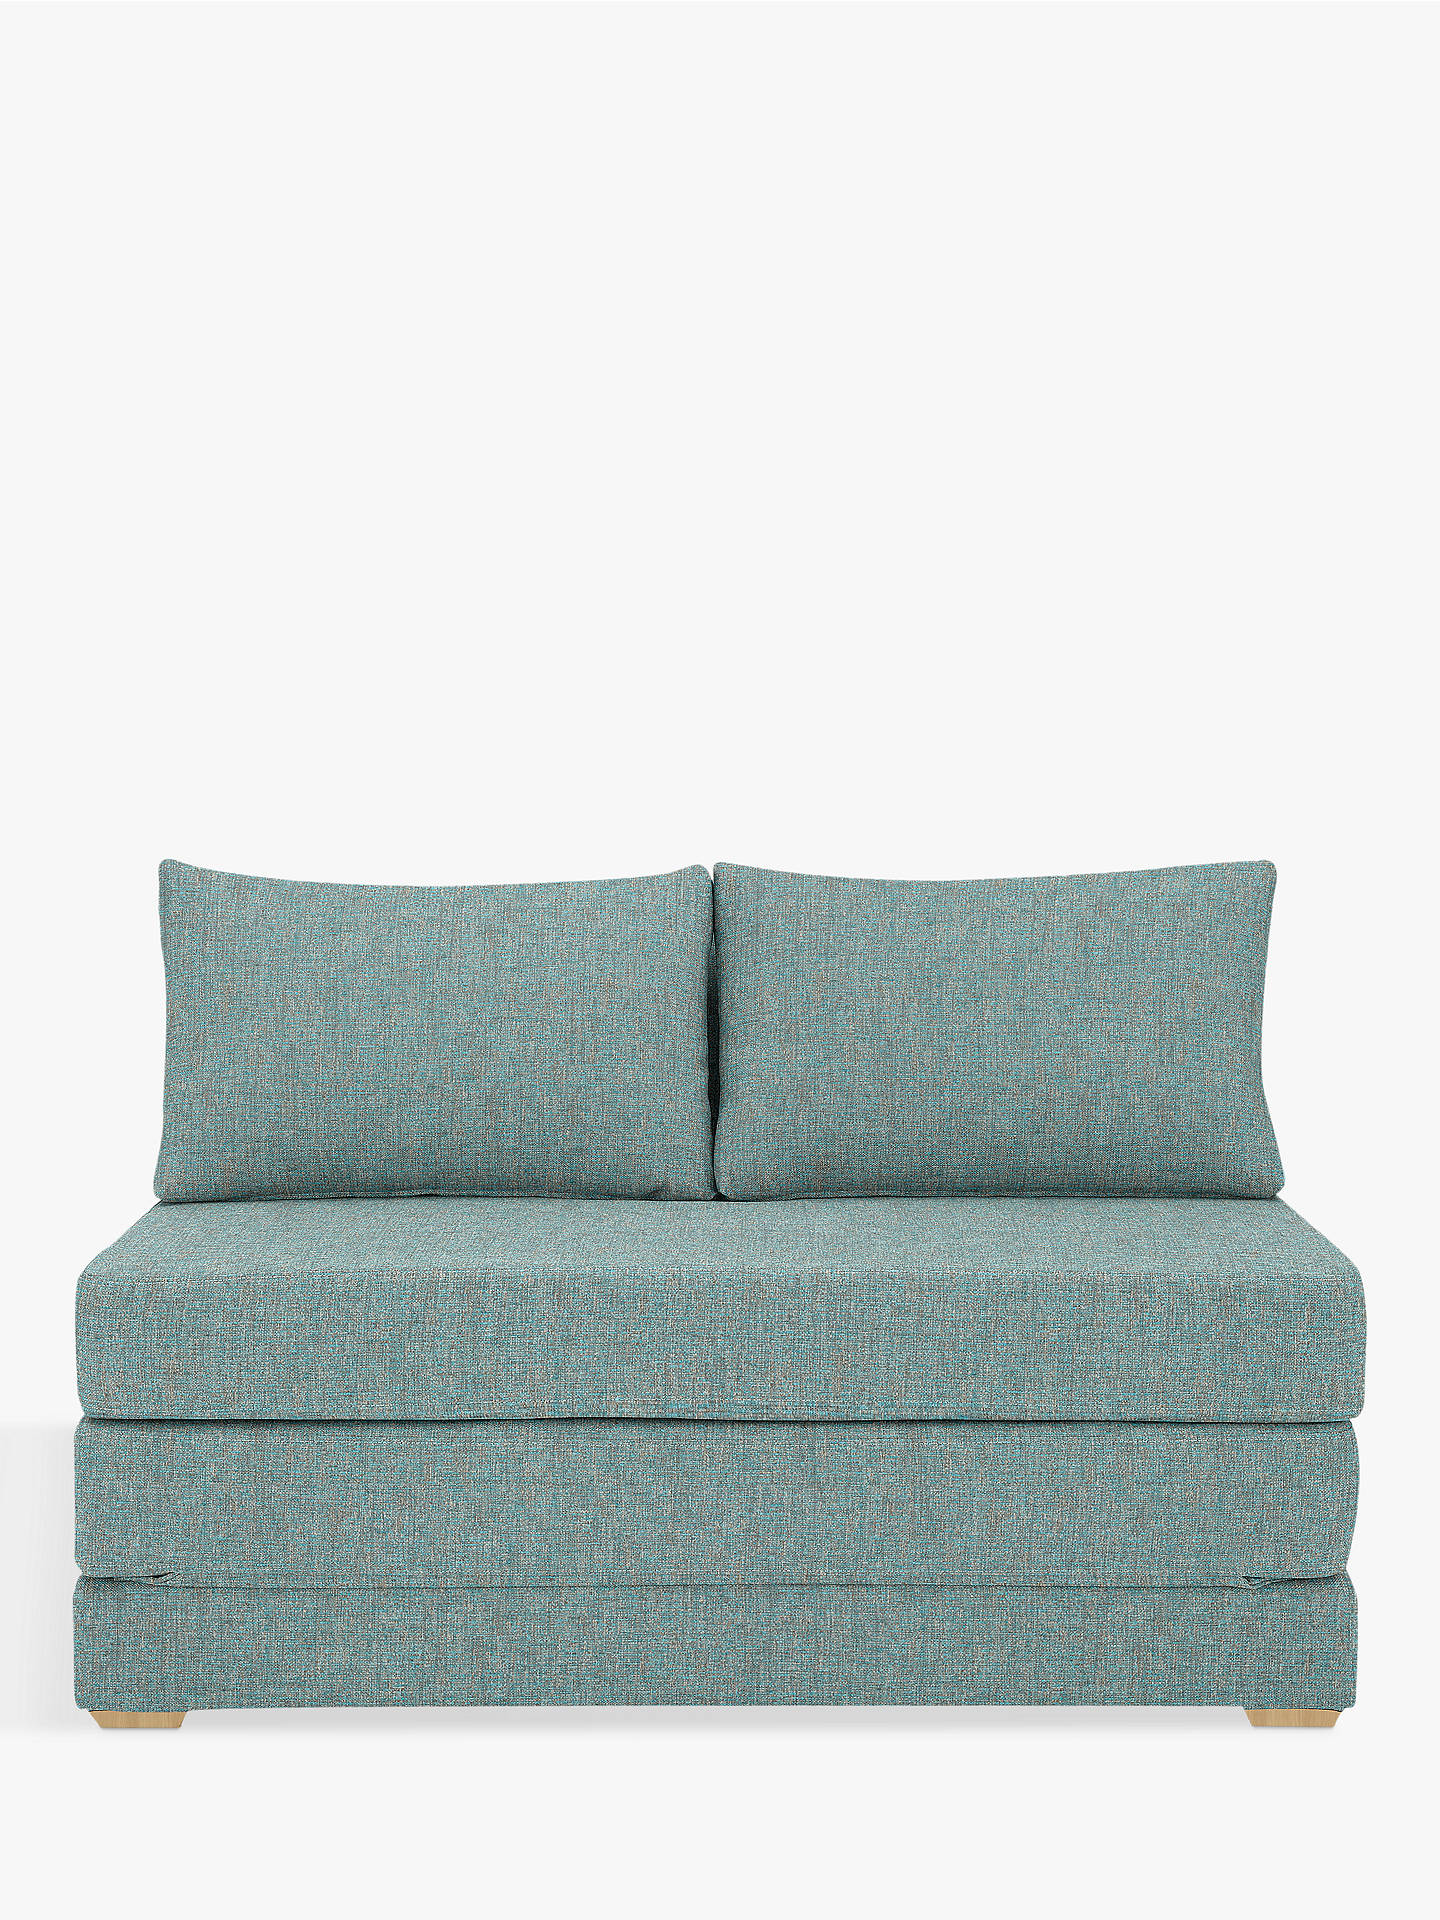 Prime House By John Lewis Kip Small Double Sofa Bed Light Leg Riley Teal Andrewgaddart Wooden Chair Designs For Living Room Andrewgaddartcom